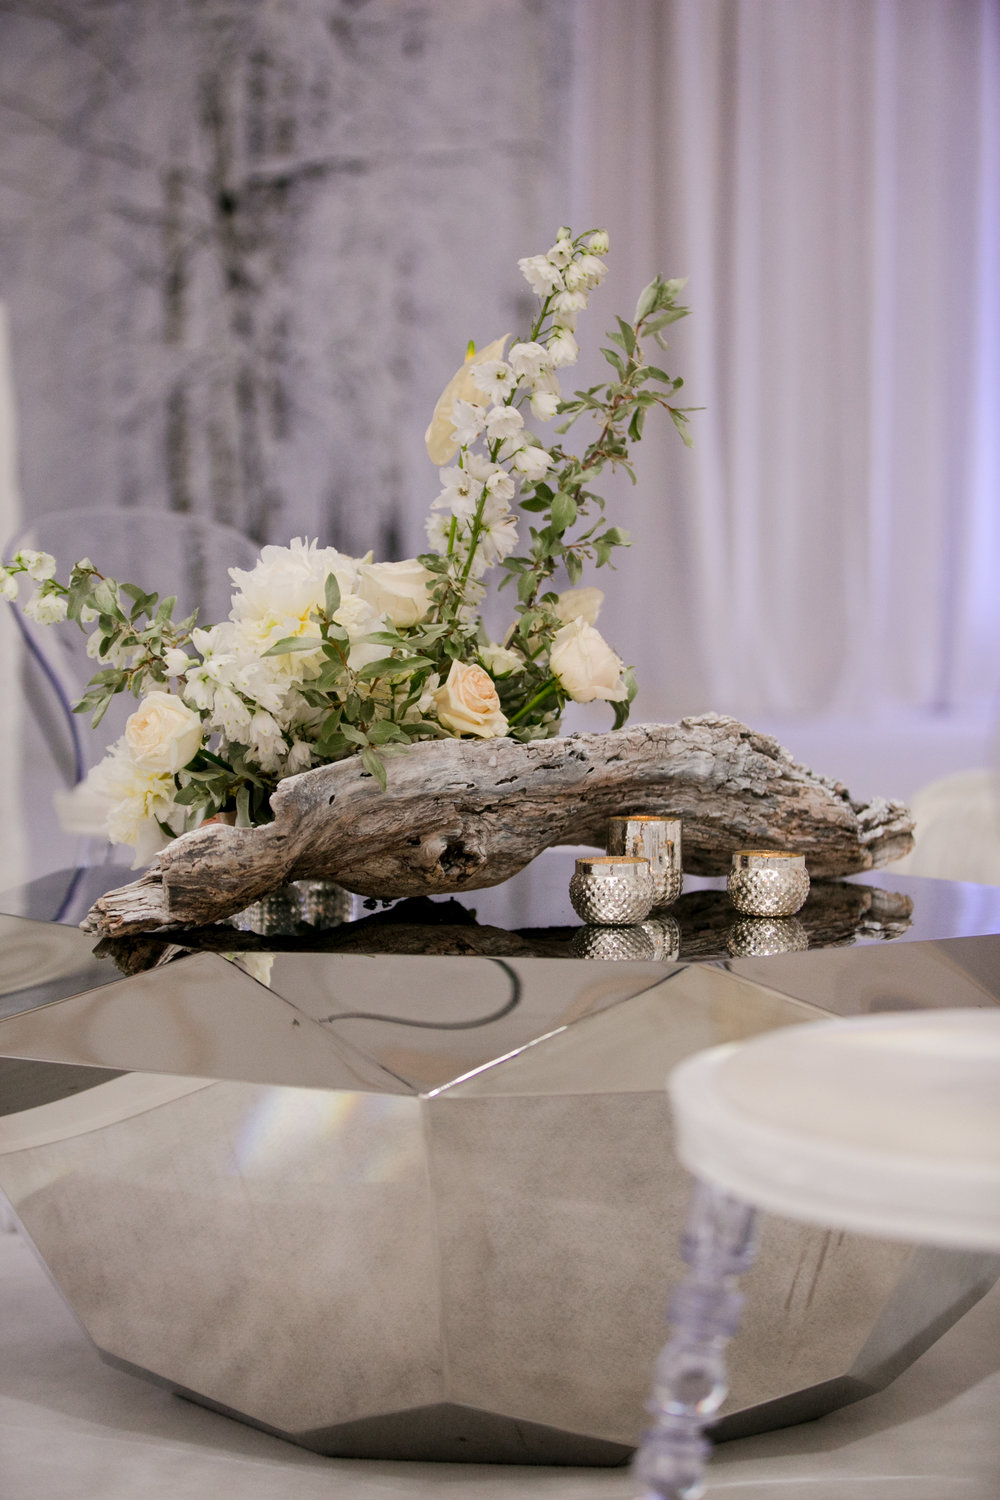 These centerpieces were the perfect blend of rustic and elegant.  The white washed birchwood was a beautiful base for the florals.  The Engage Gala in Banff Canada.  Photo by Genevieve deMaio Photography.  Creative Design by Angela Desveaux of Wedluxe.  Partners include Revelry Event Designers, Modern Luxe Rentals, West Coast Music, La Tavola Linen, Decor and More, Engineered Arts, and Designer Dance Floors,.